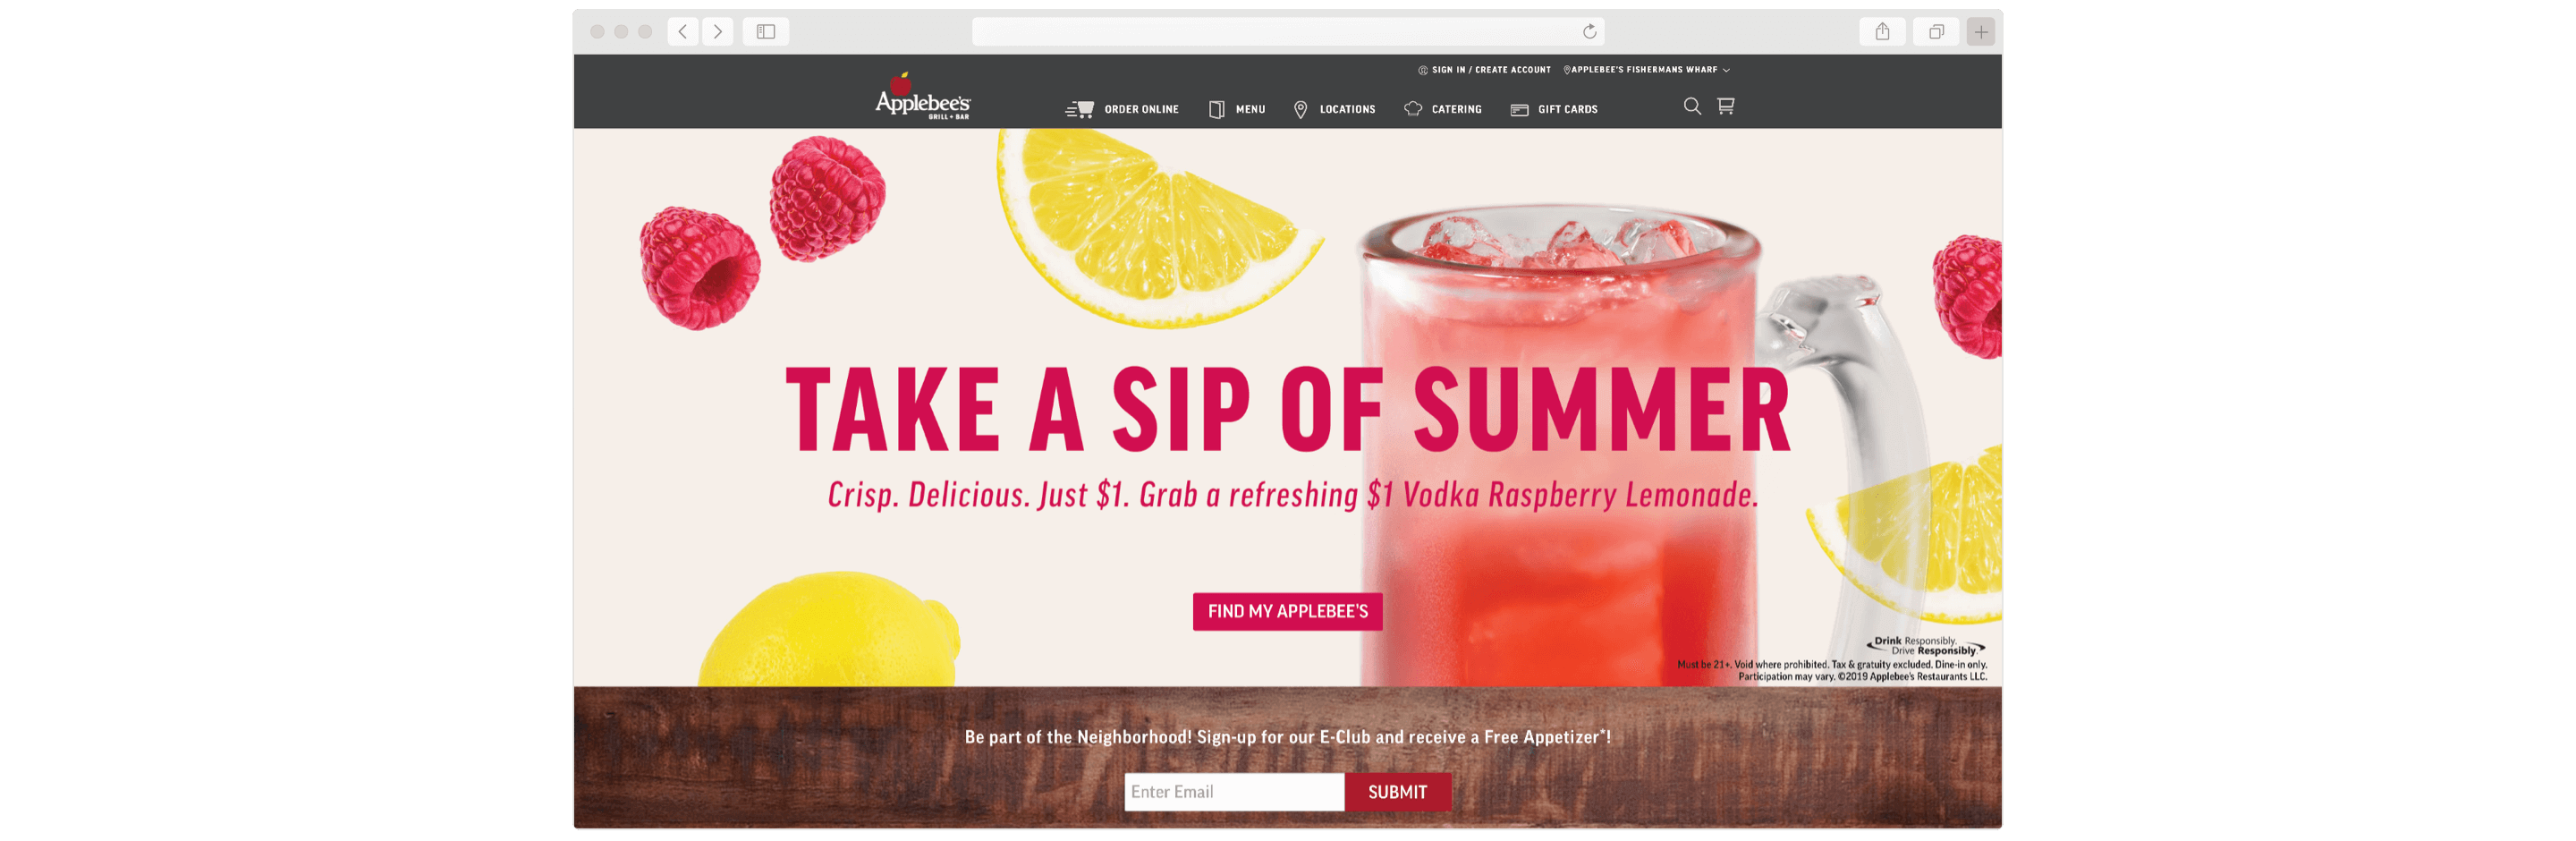 Glasses of lemonade on Applebee's web site by ArcTouch